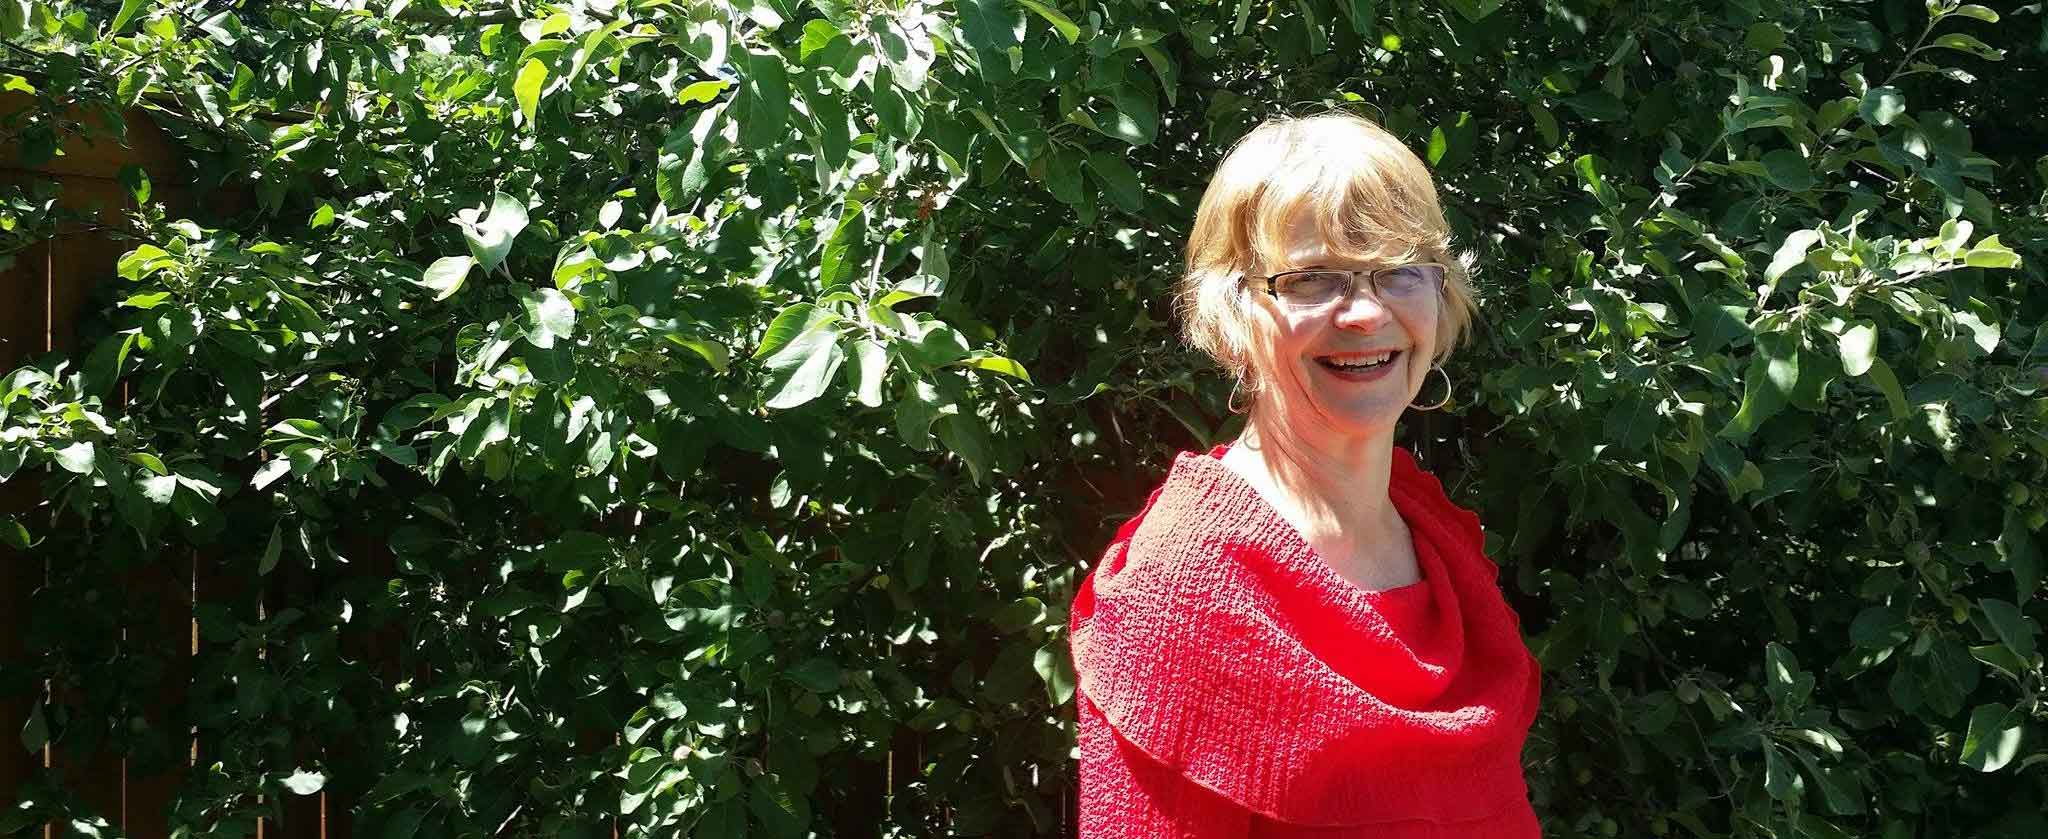 Diane by the apple tree